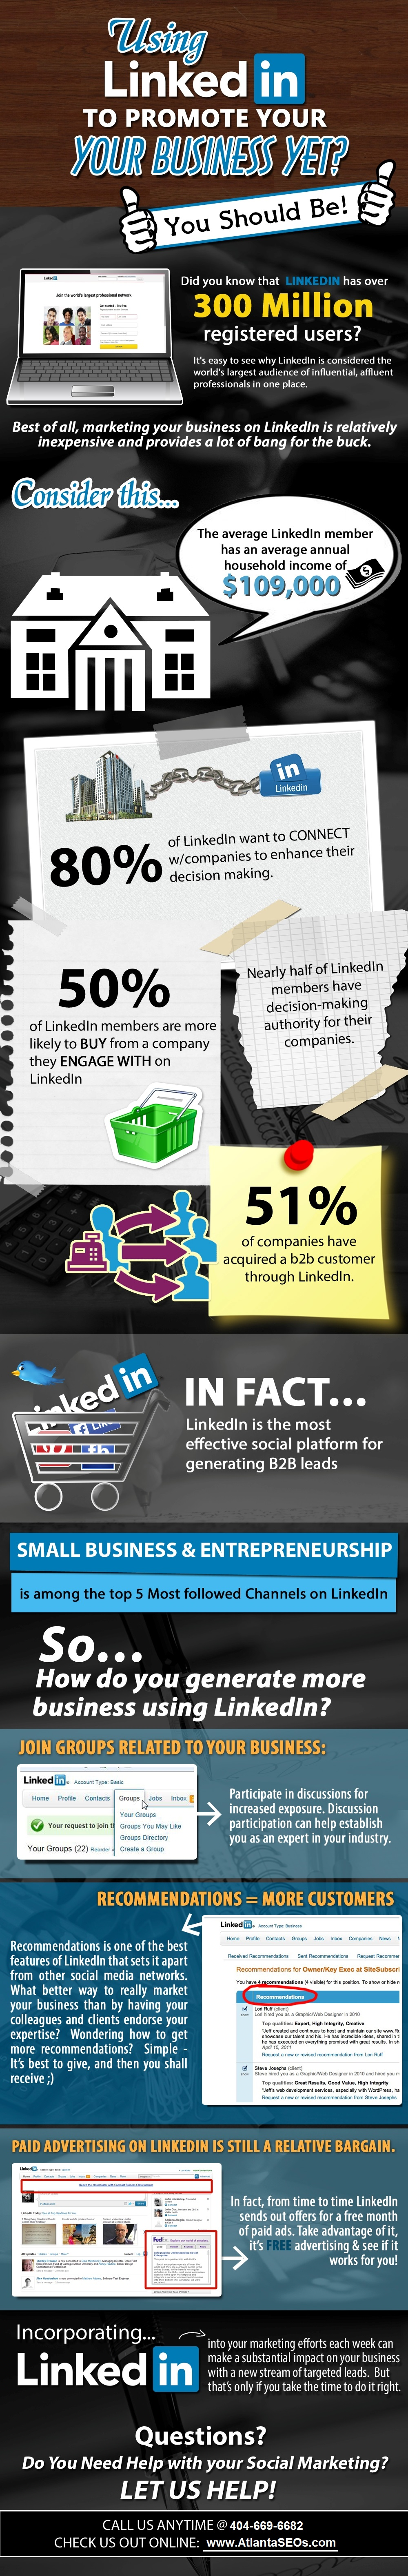 Are You Using LinkedIn for Your Business Yet? (Infographic)